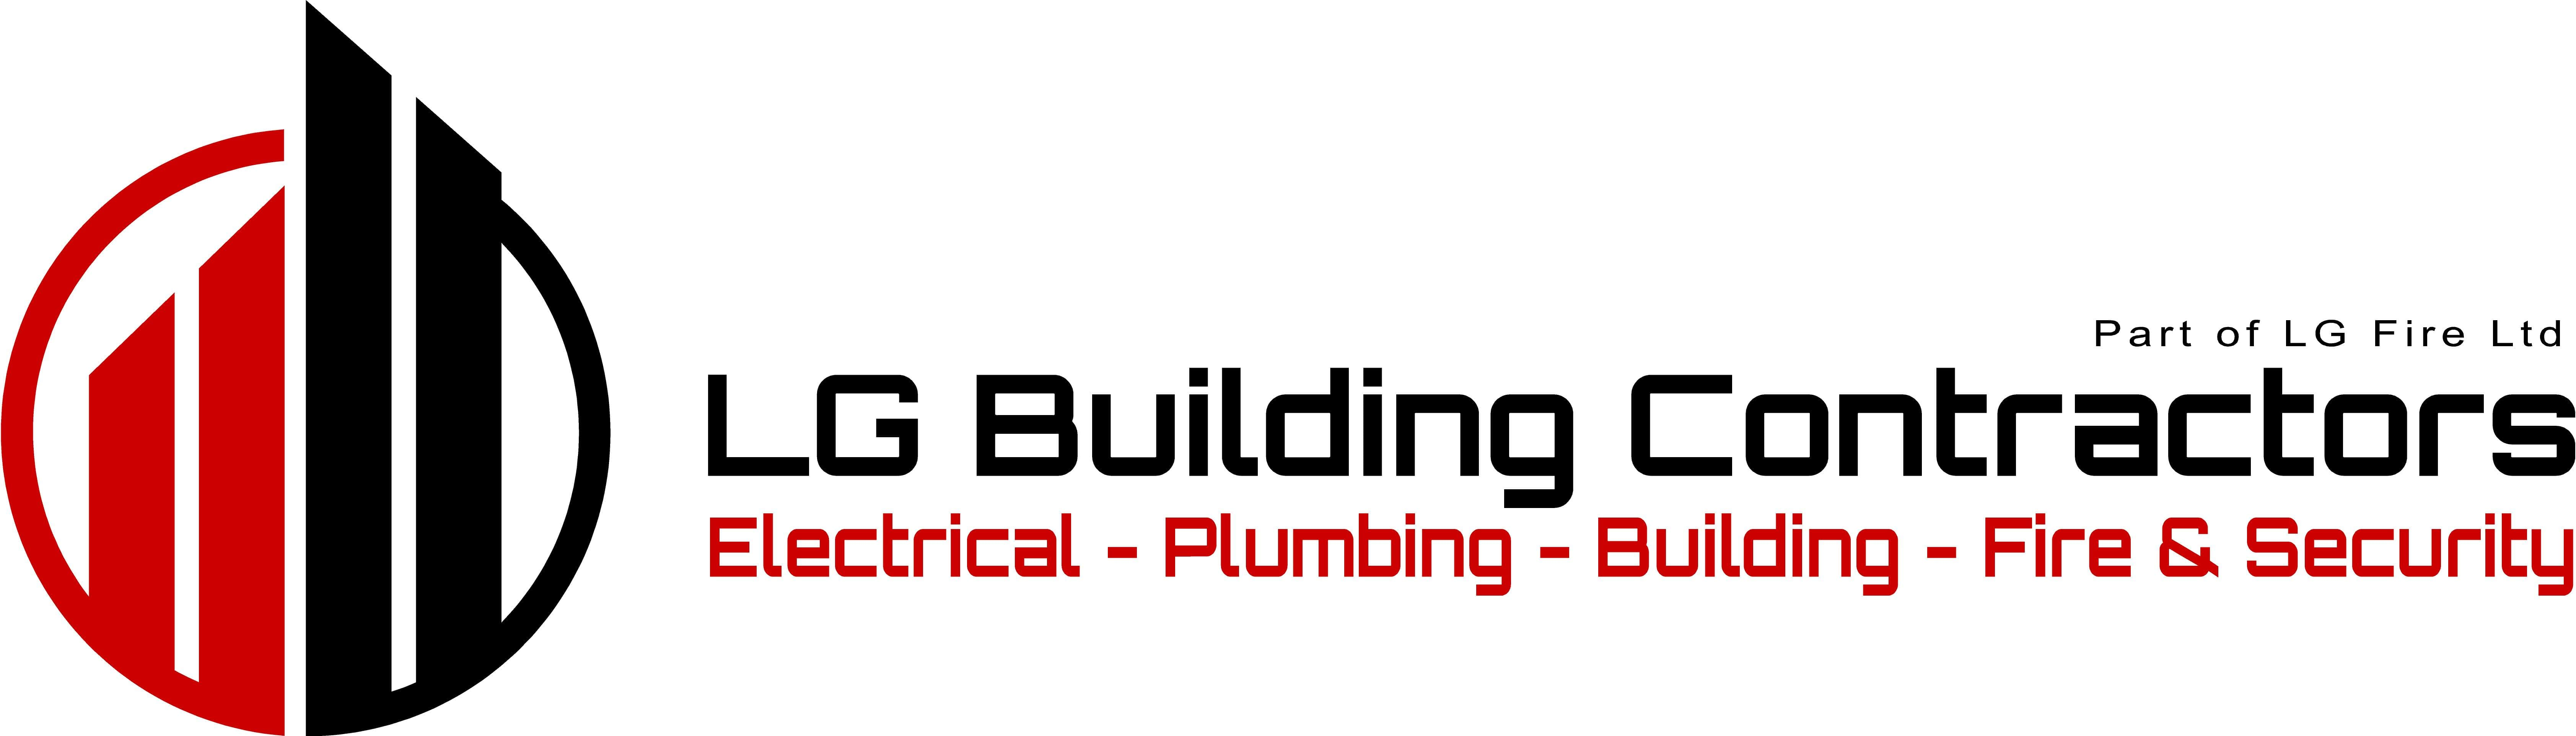 LG Building Contractors Logo to left of text JPG-min